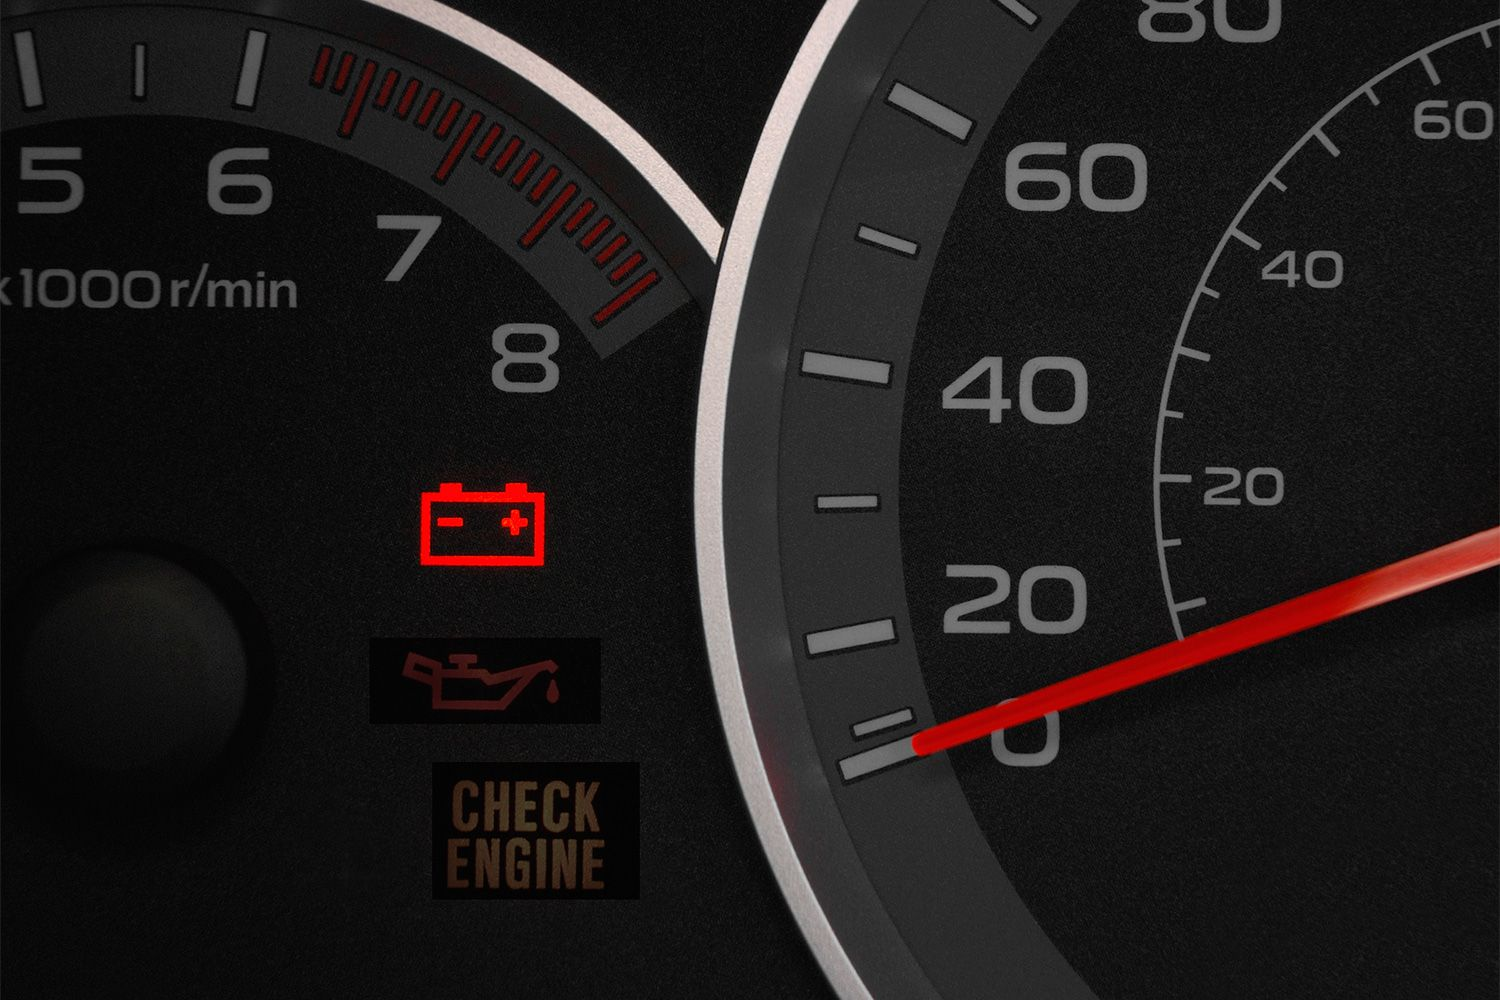 What The Battery Light Means On Your Dashboard 1999 Volvo Truck Ecu Wiring